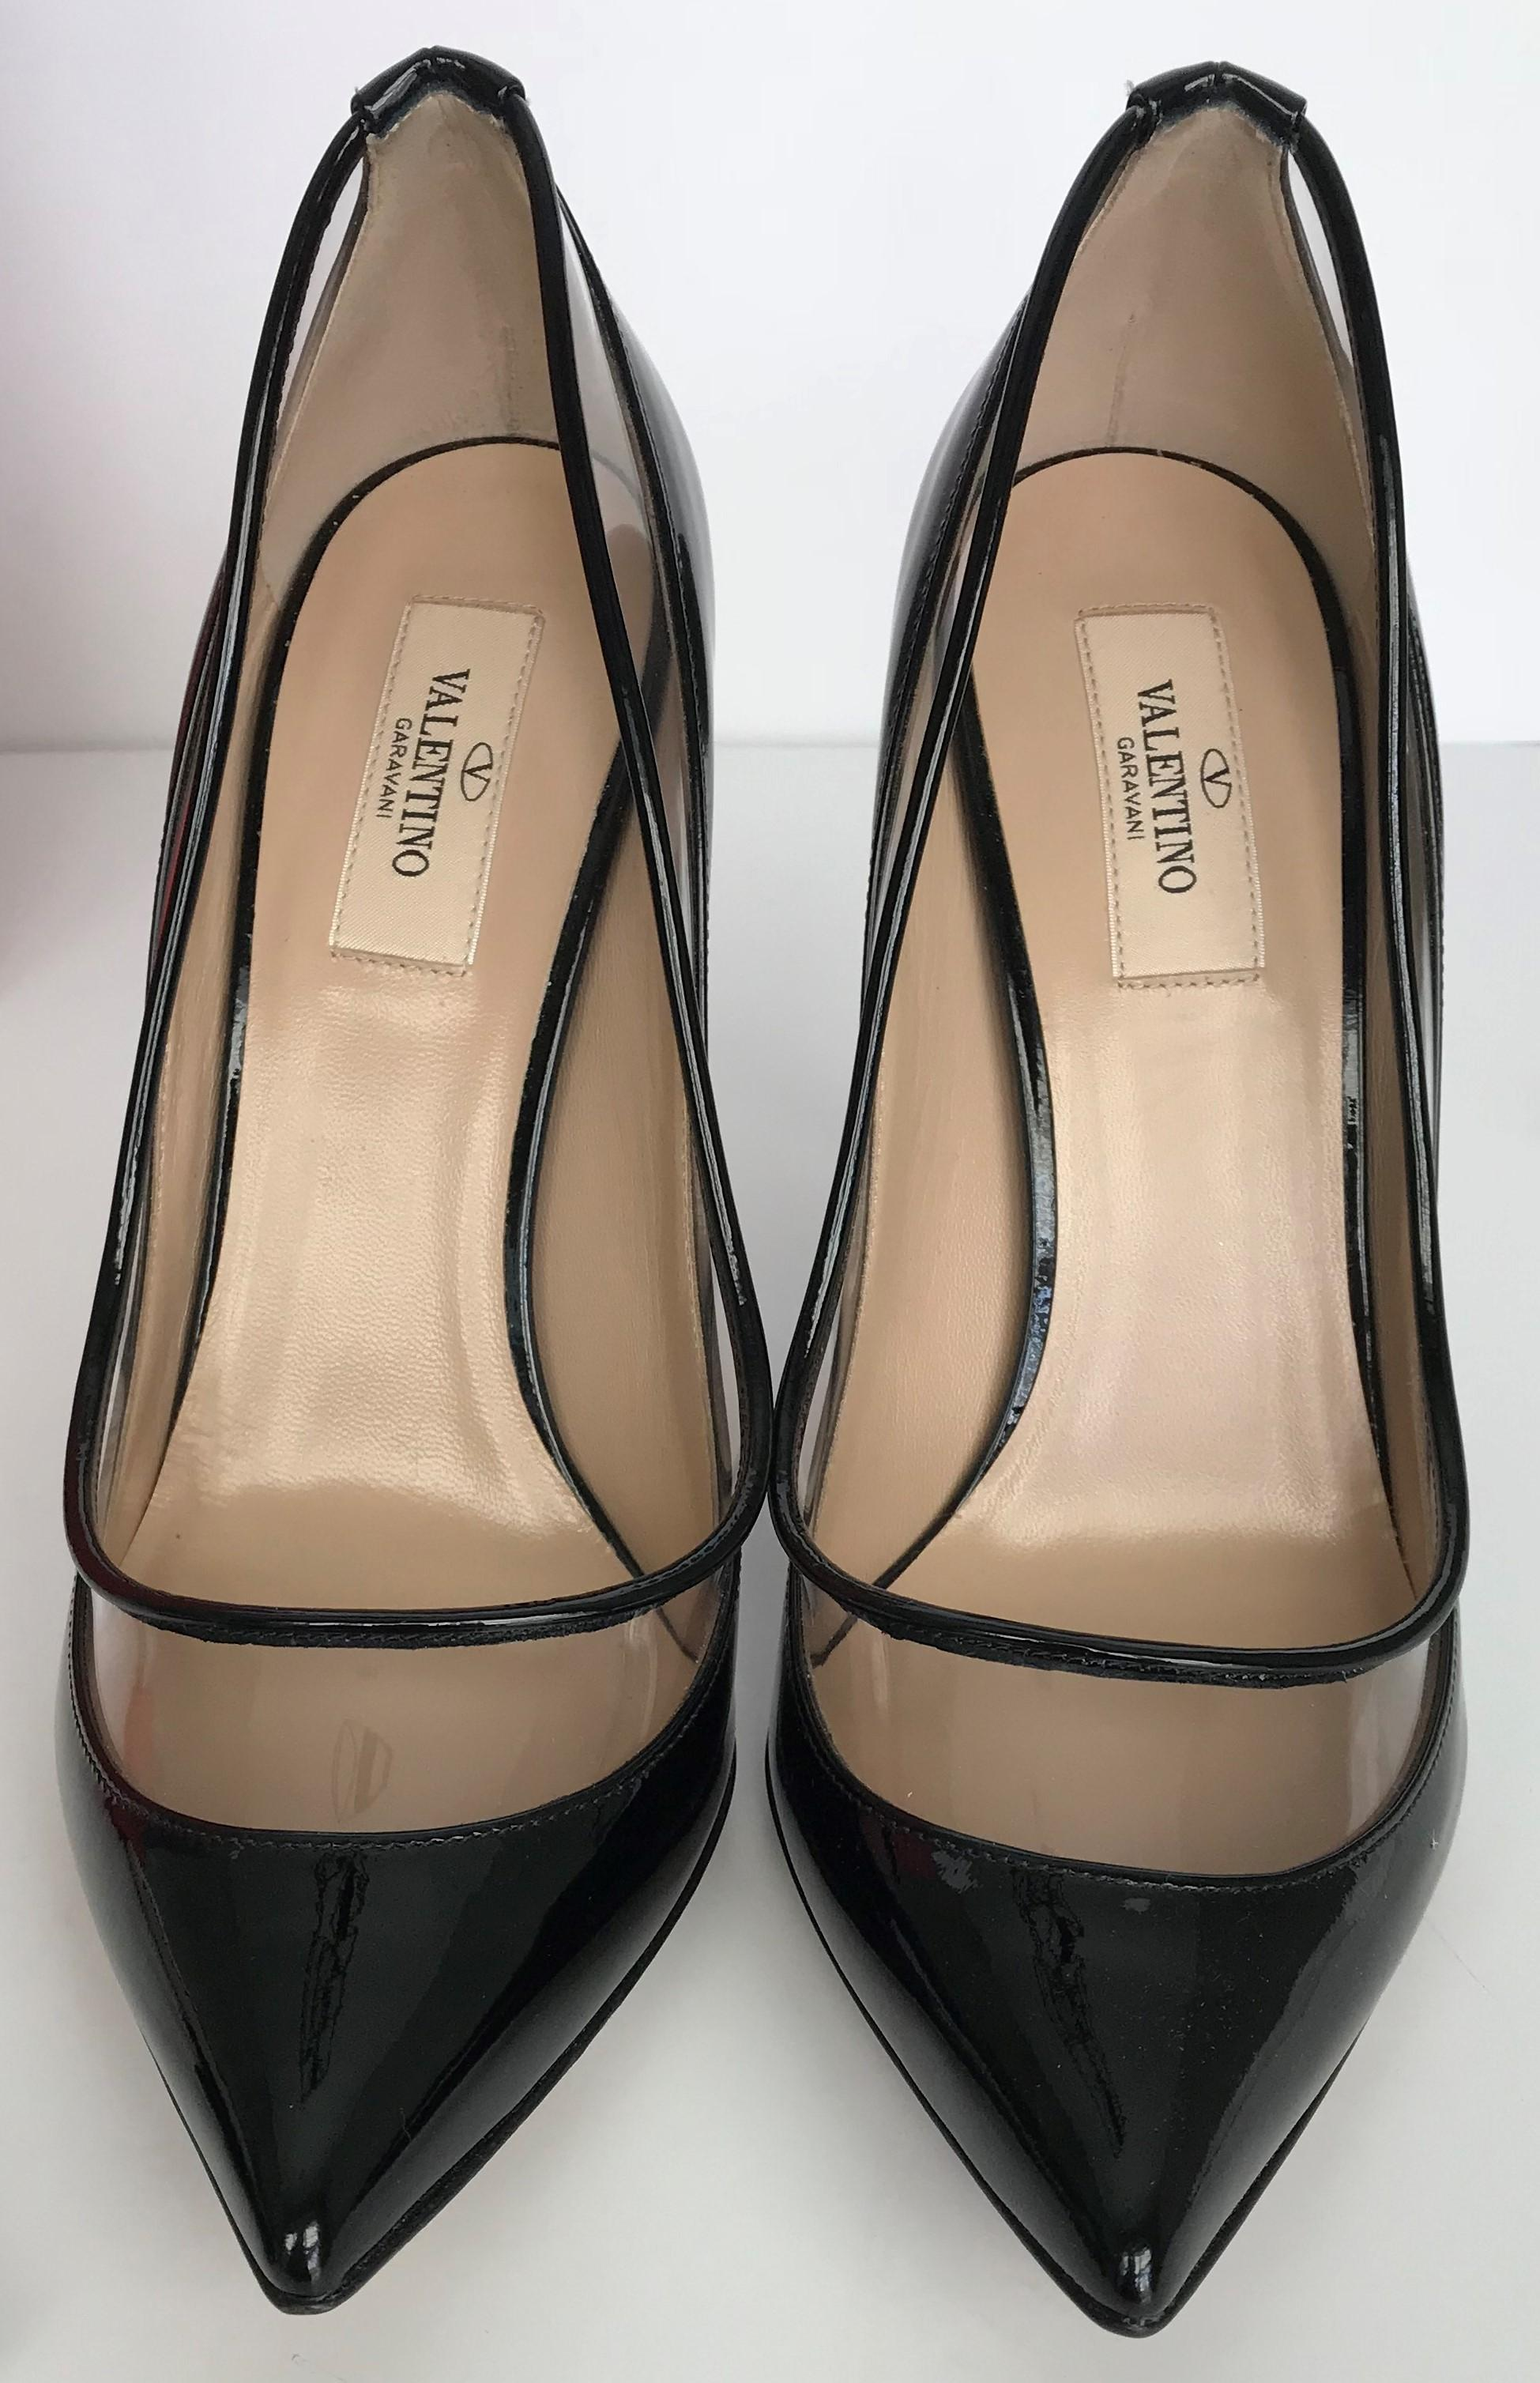 db417a0d62ea ... Valentino Black Dolly Bow Bow Bow Patent Leather Removable Bows Pumps  Size EU 39 (Approx ...